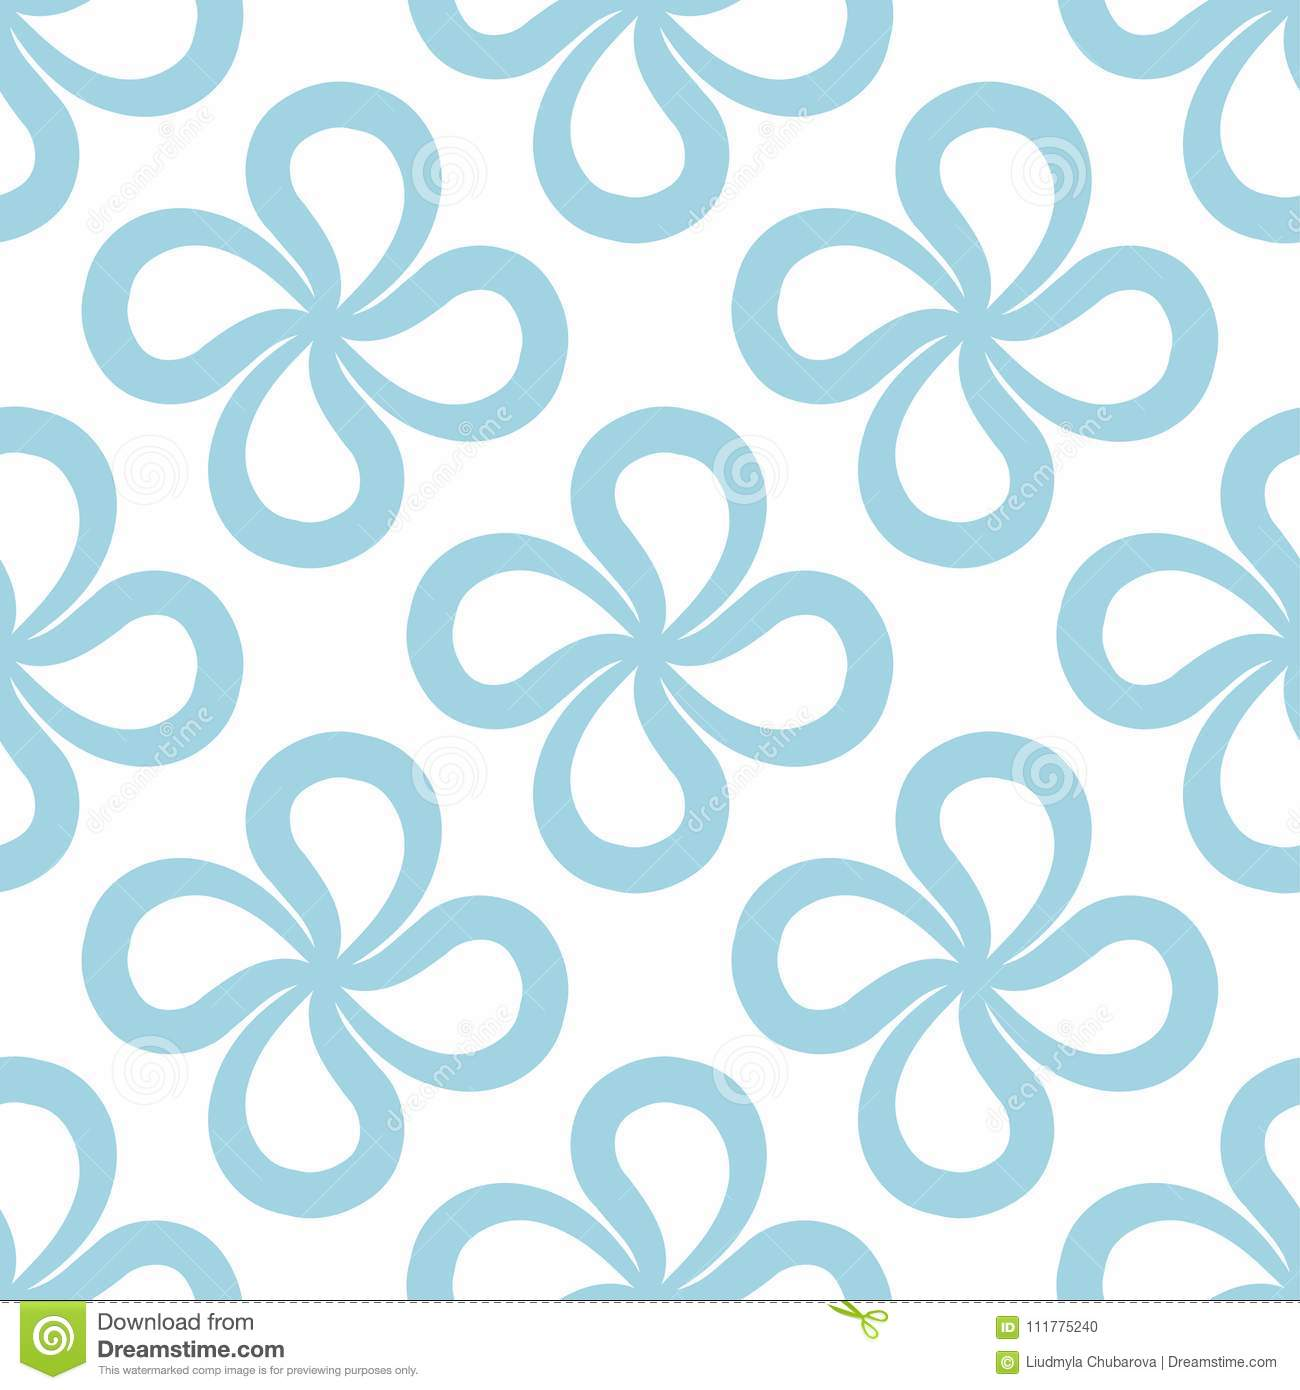 Abstract seamless pattern for textile, fabrics or wallpapers